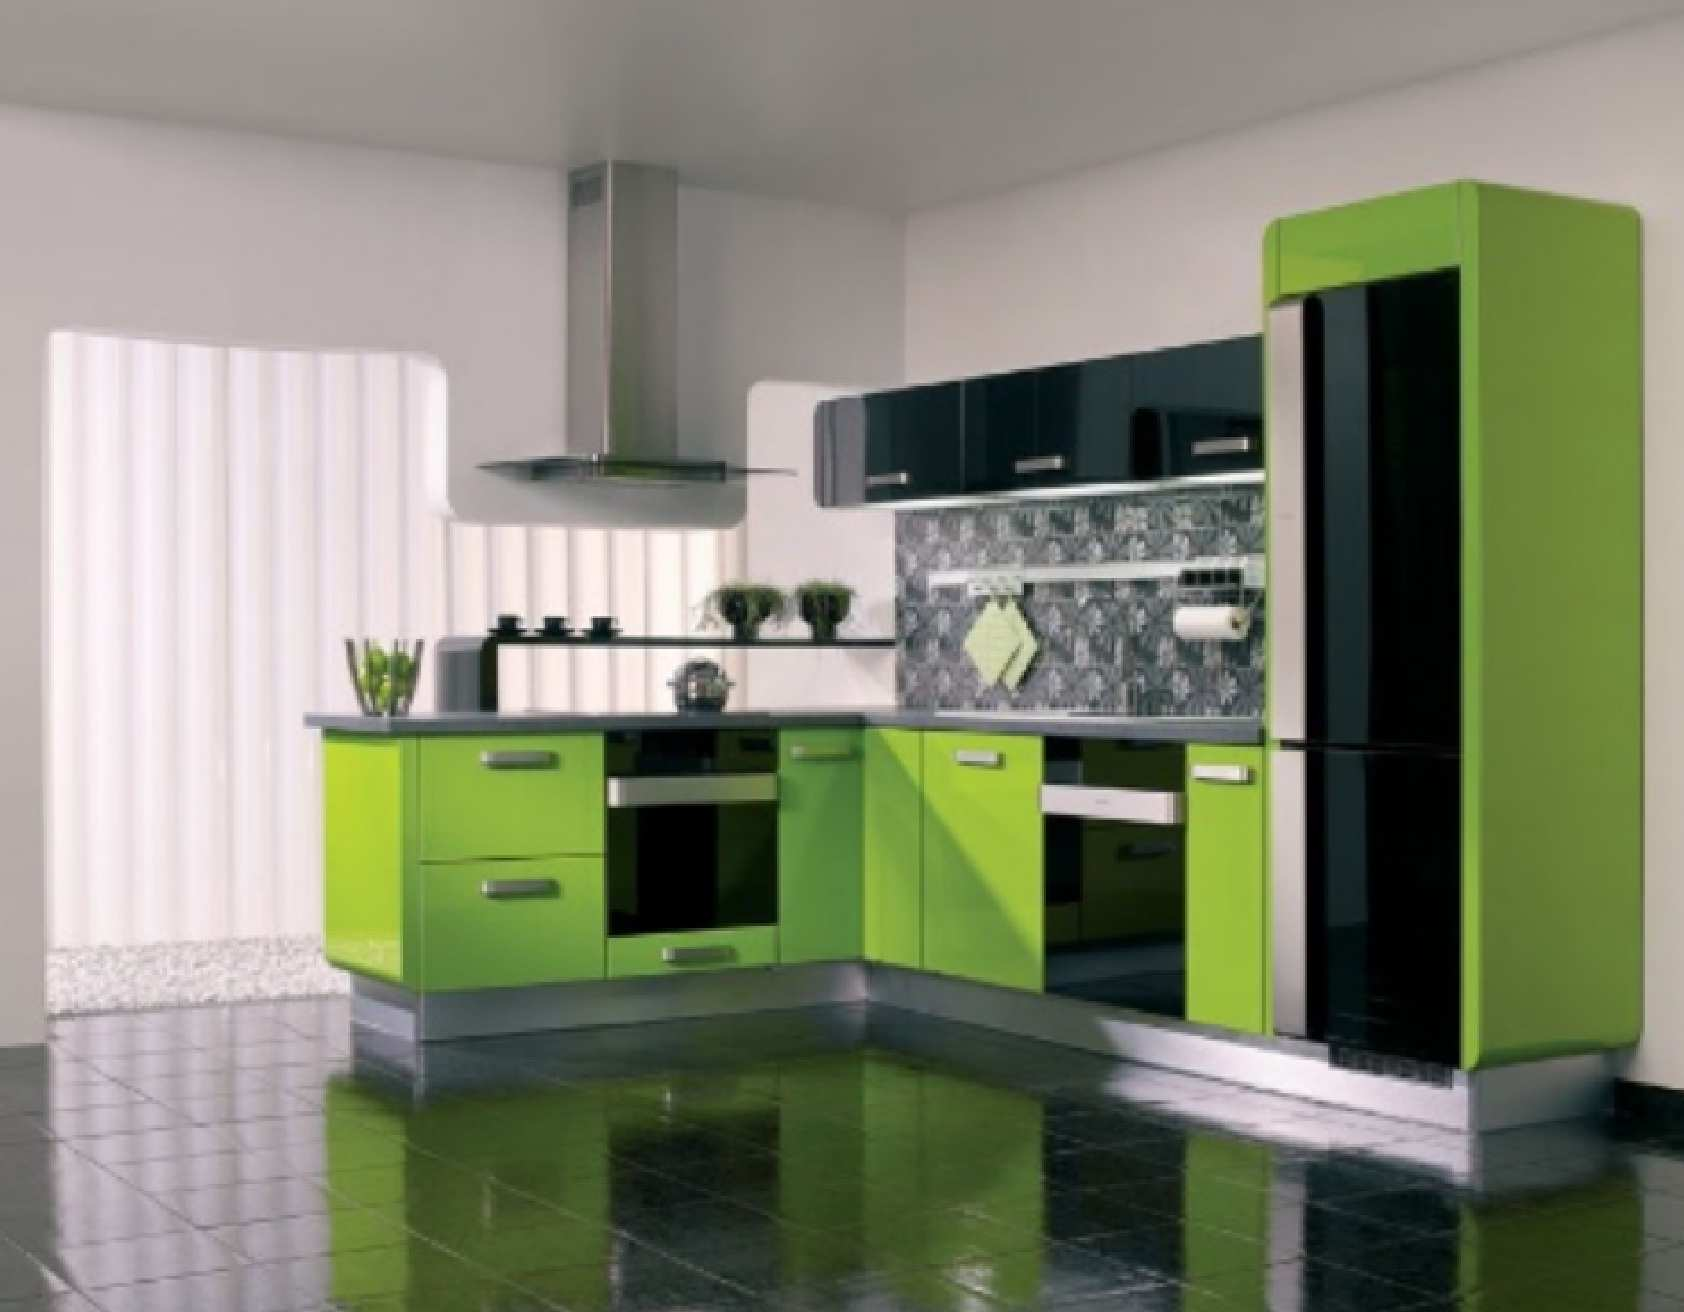 office-kitchen-bright-modern-interior-design-kitchen-in-green-and-white-design-cabinet-bright-green-office-design